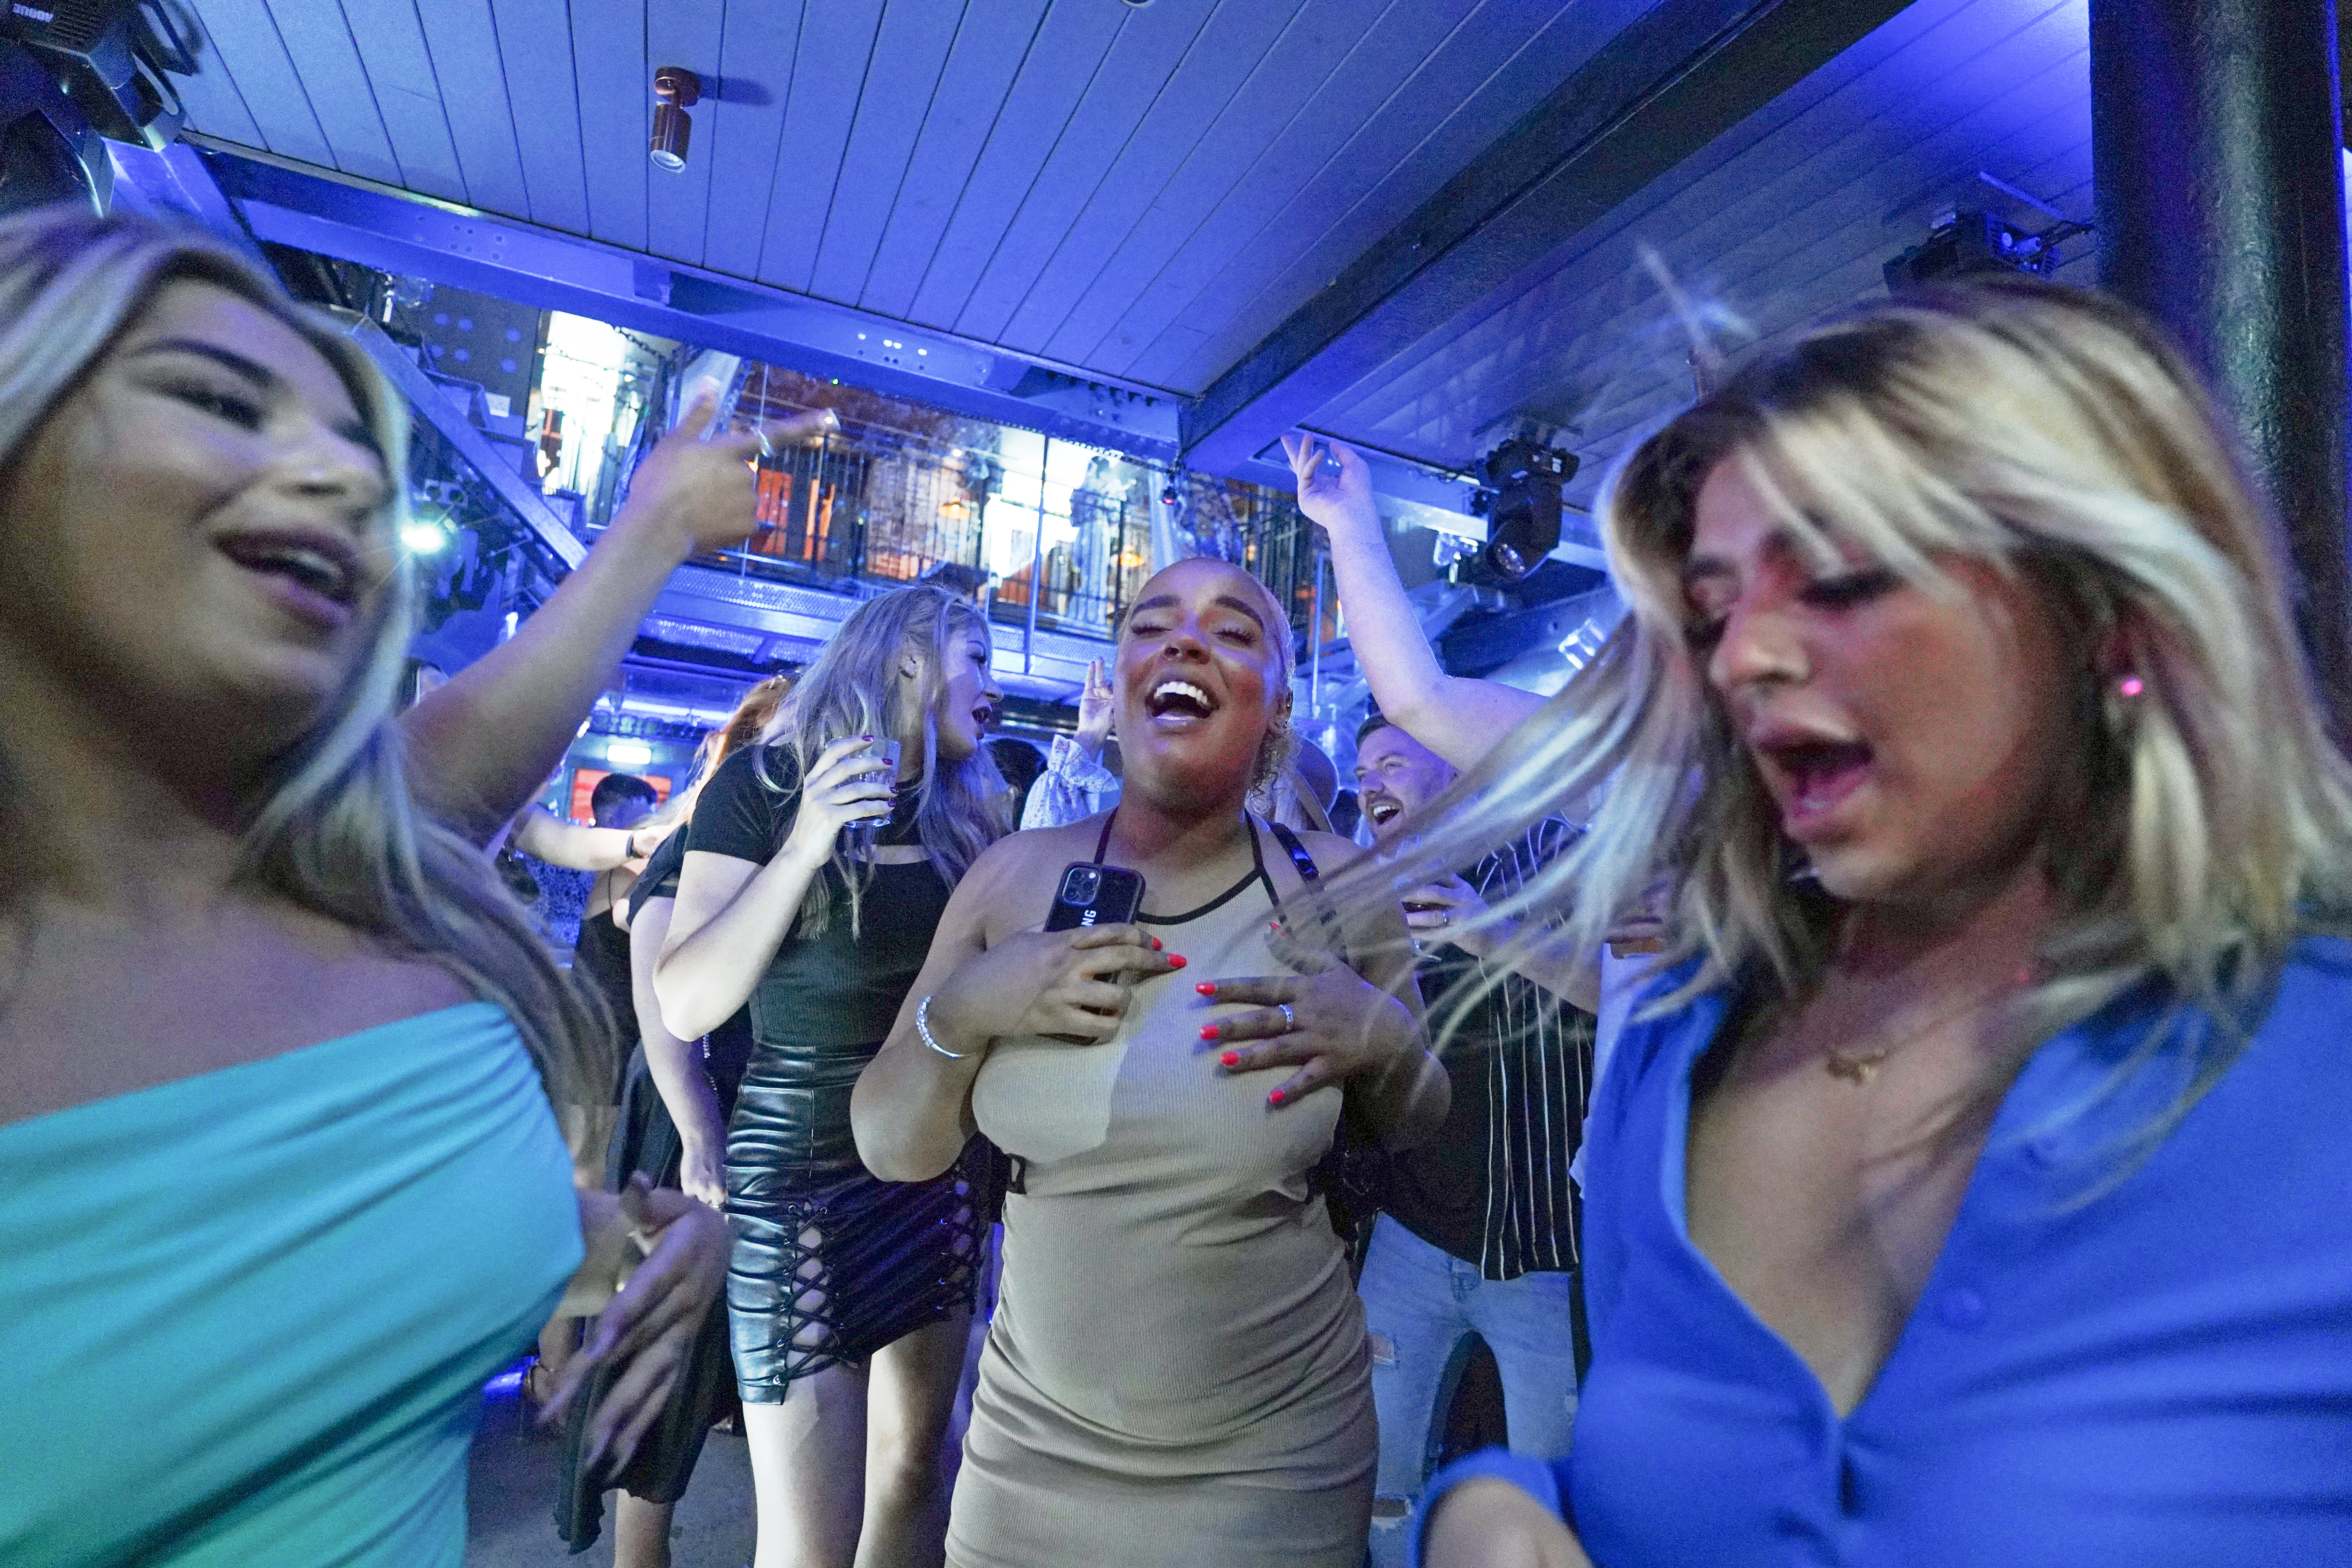 <p>People dancing in Bar Fibre in Leeds, after the final legal coronavirus restrictions were lifted in England at midnight. Picture date: Monday July 19, 2021.</p>